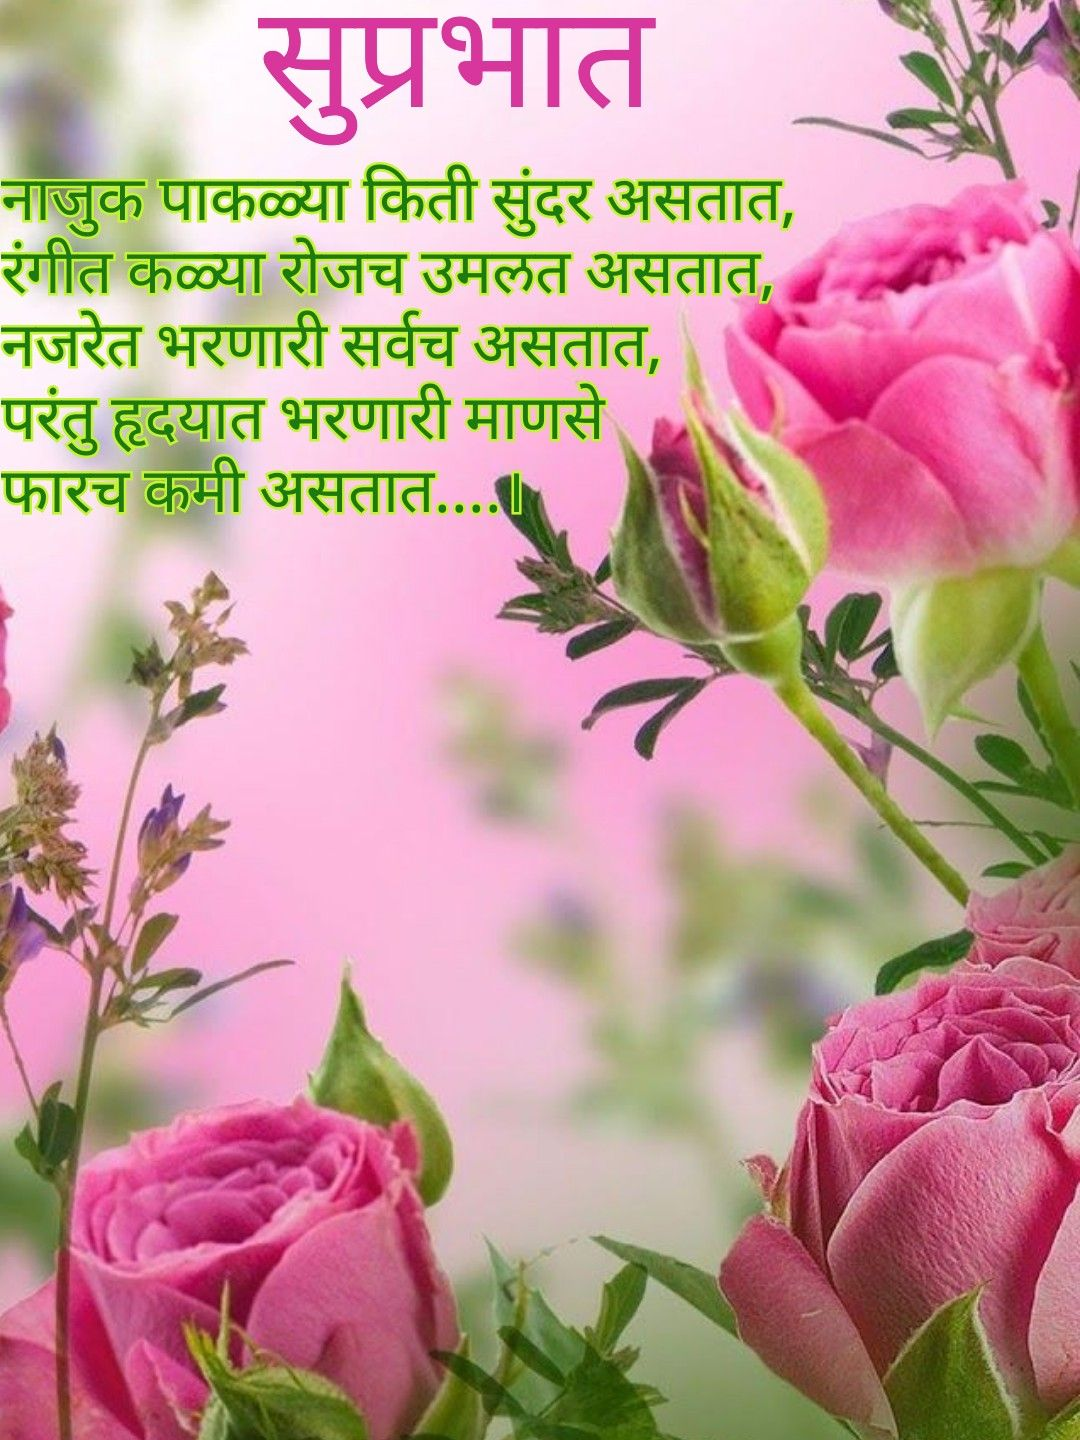 Pin By Vinayak Shetty On Marathi Poem Quotes And Songs Morning Greetings Quotes Morning Images Morning Greeting